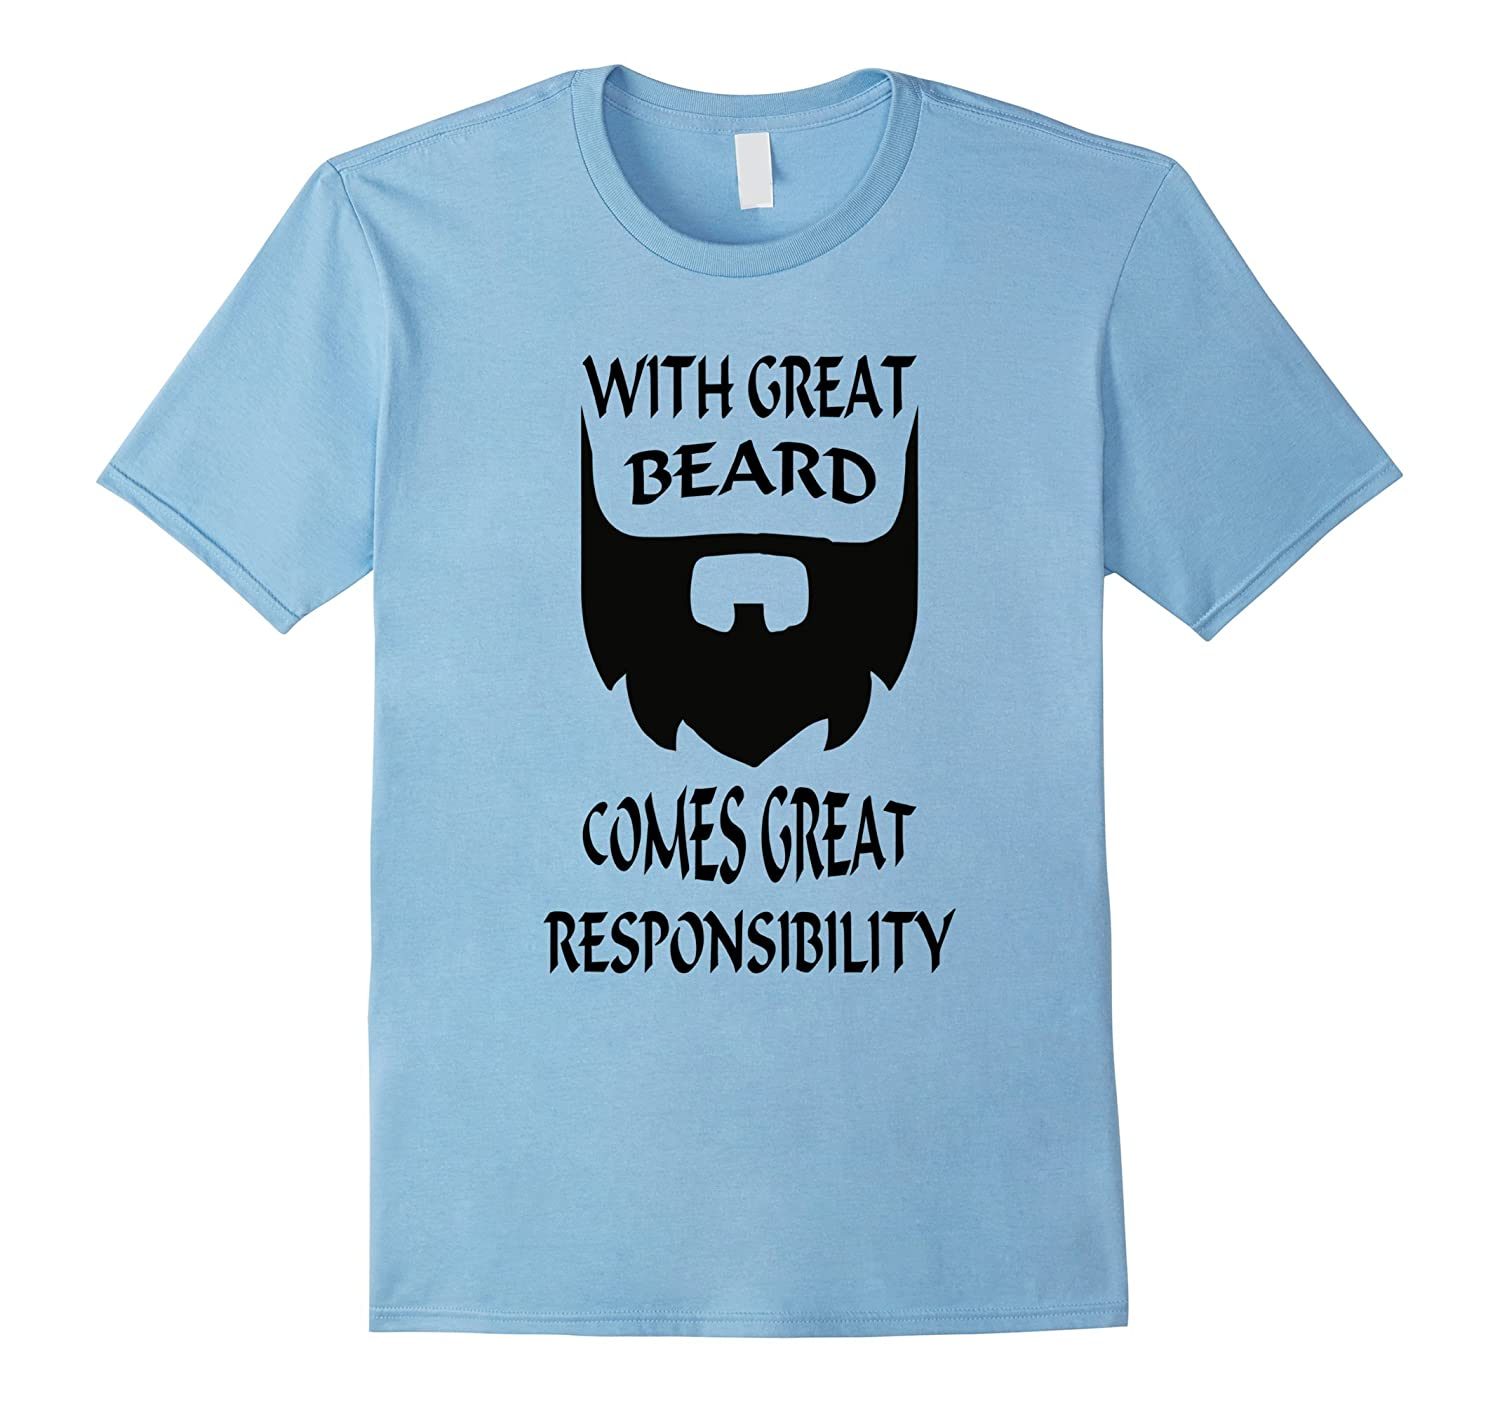 With great beard comes great responsibility T-shirt-CL